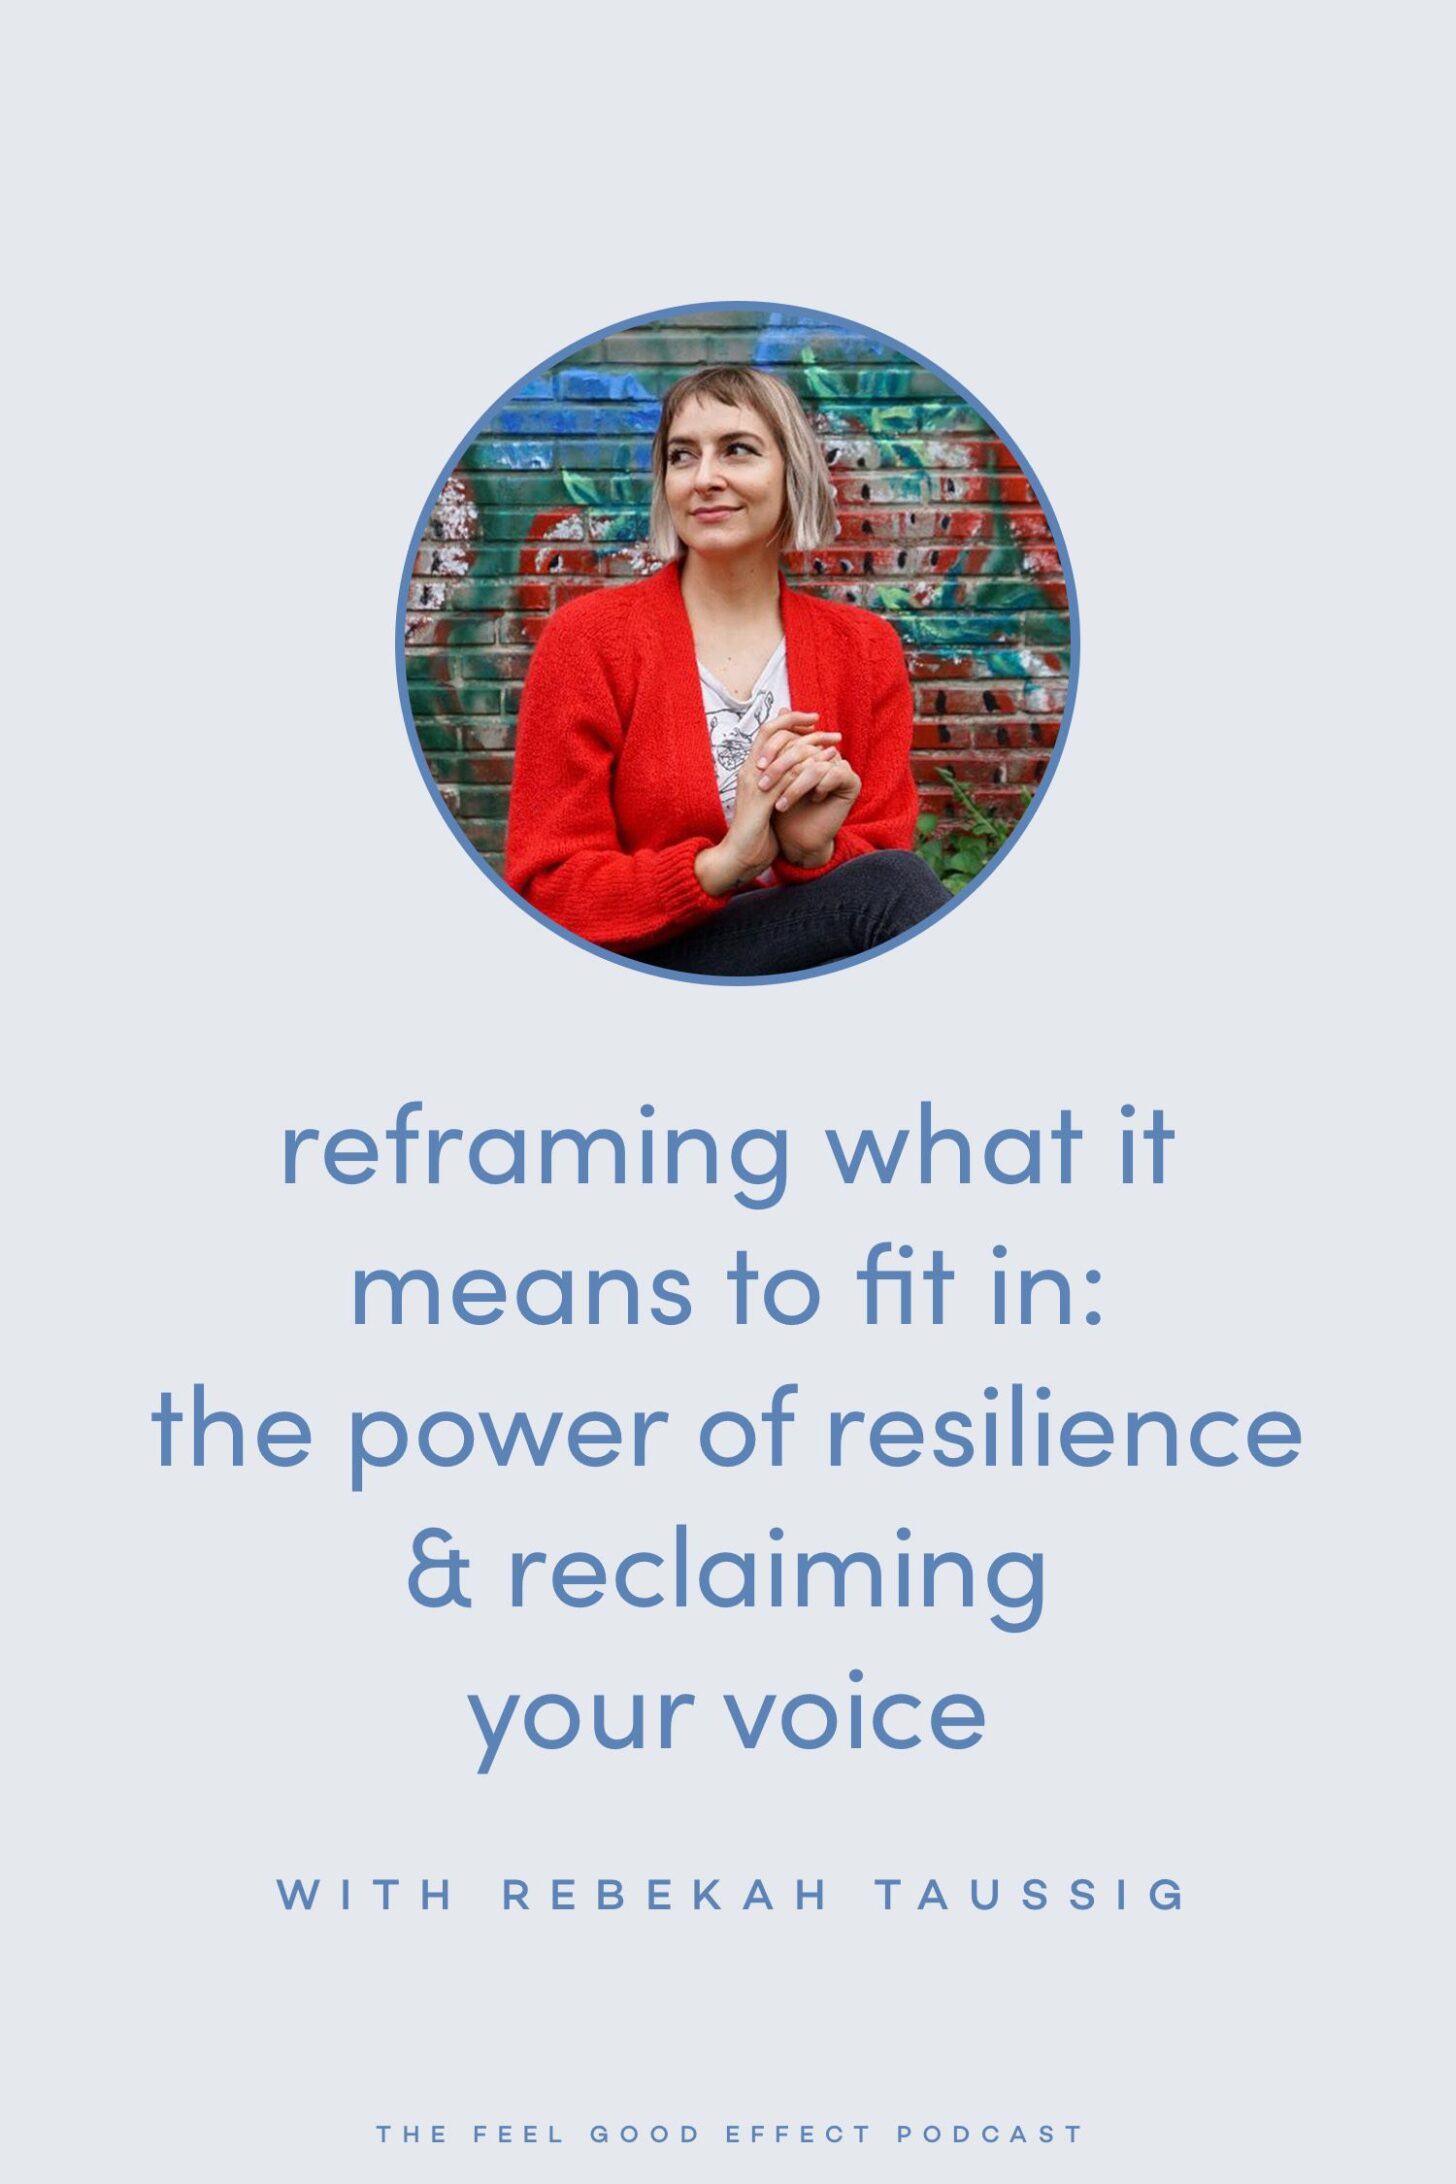 Reframing what it means to fit in with Rebekah Taussig on the Feel Good Effect Podcast #realfoodwholelife #feelgoodeffectpodcast #motivation #selflove #selfcare #selfcompassion #findyourvoice #fittingin #belonging